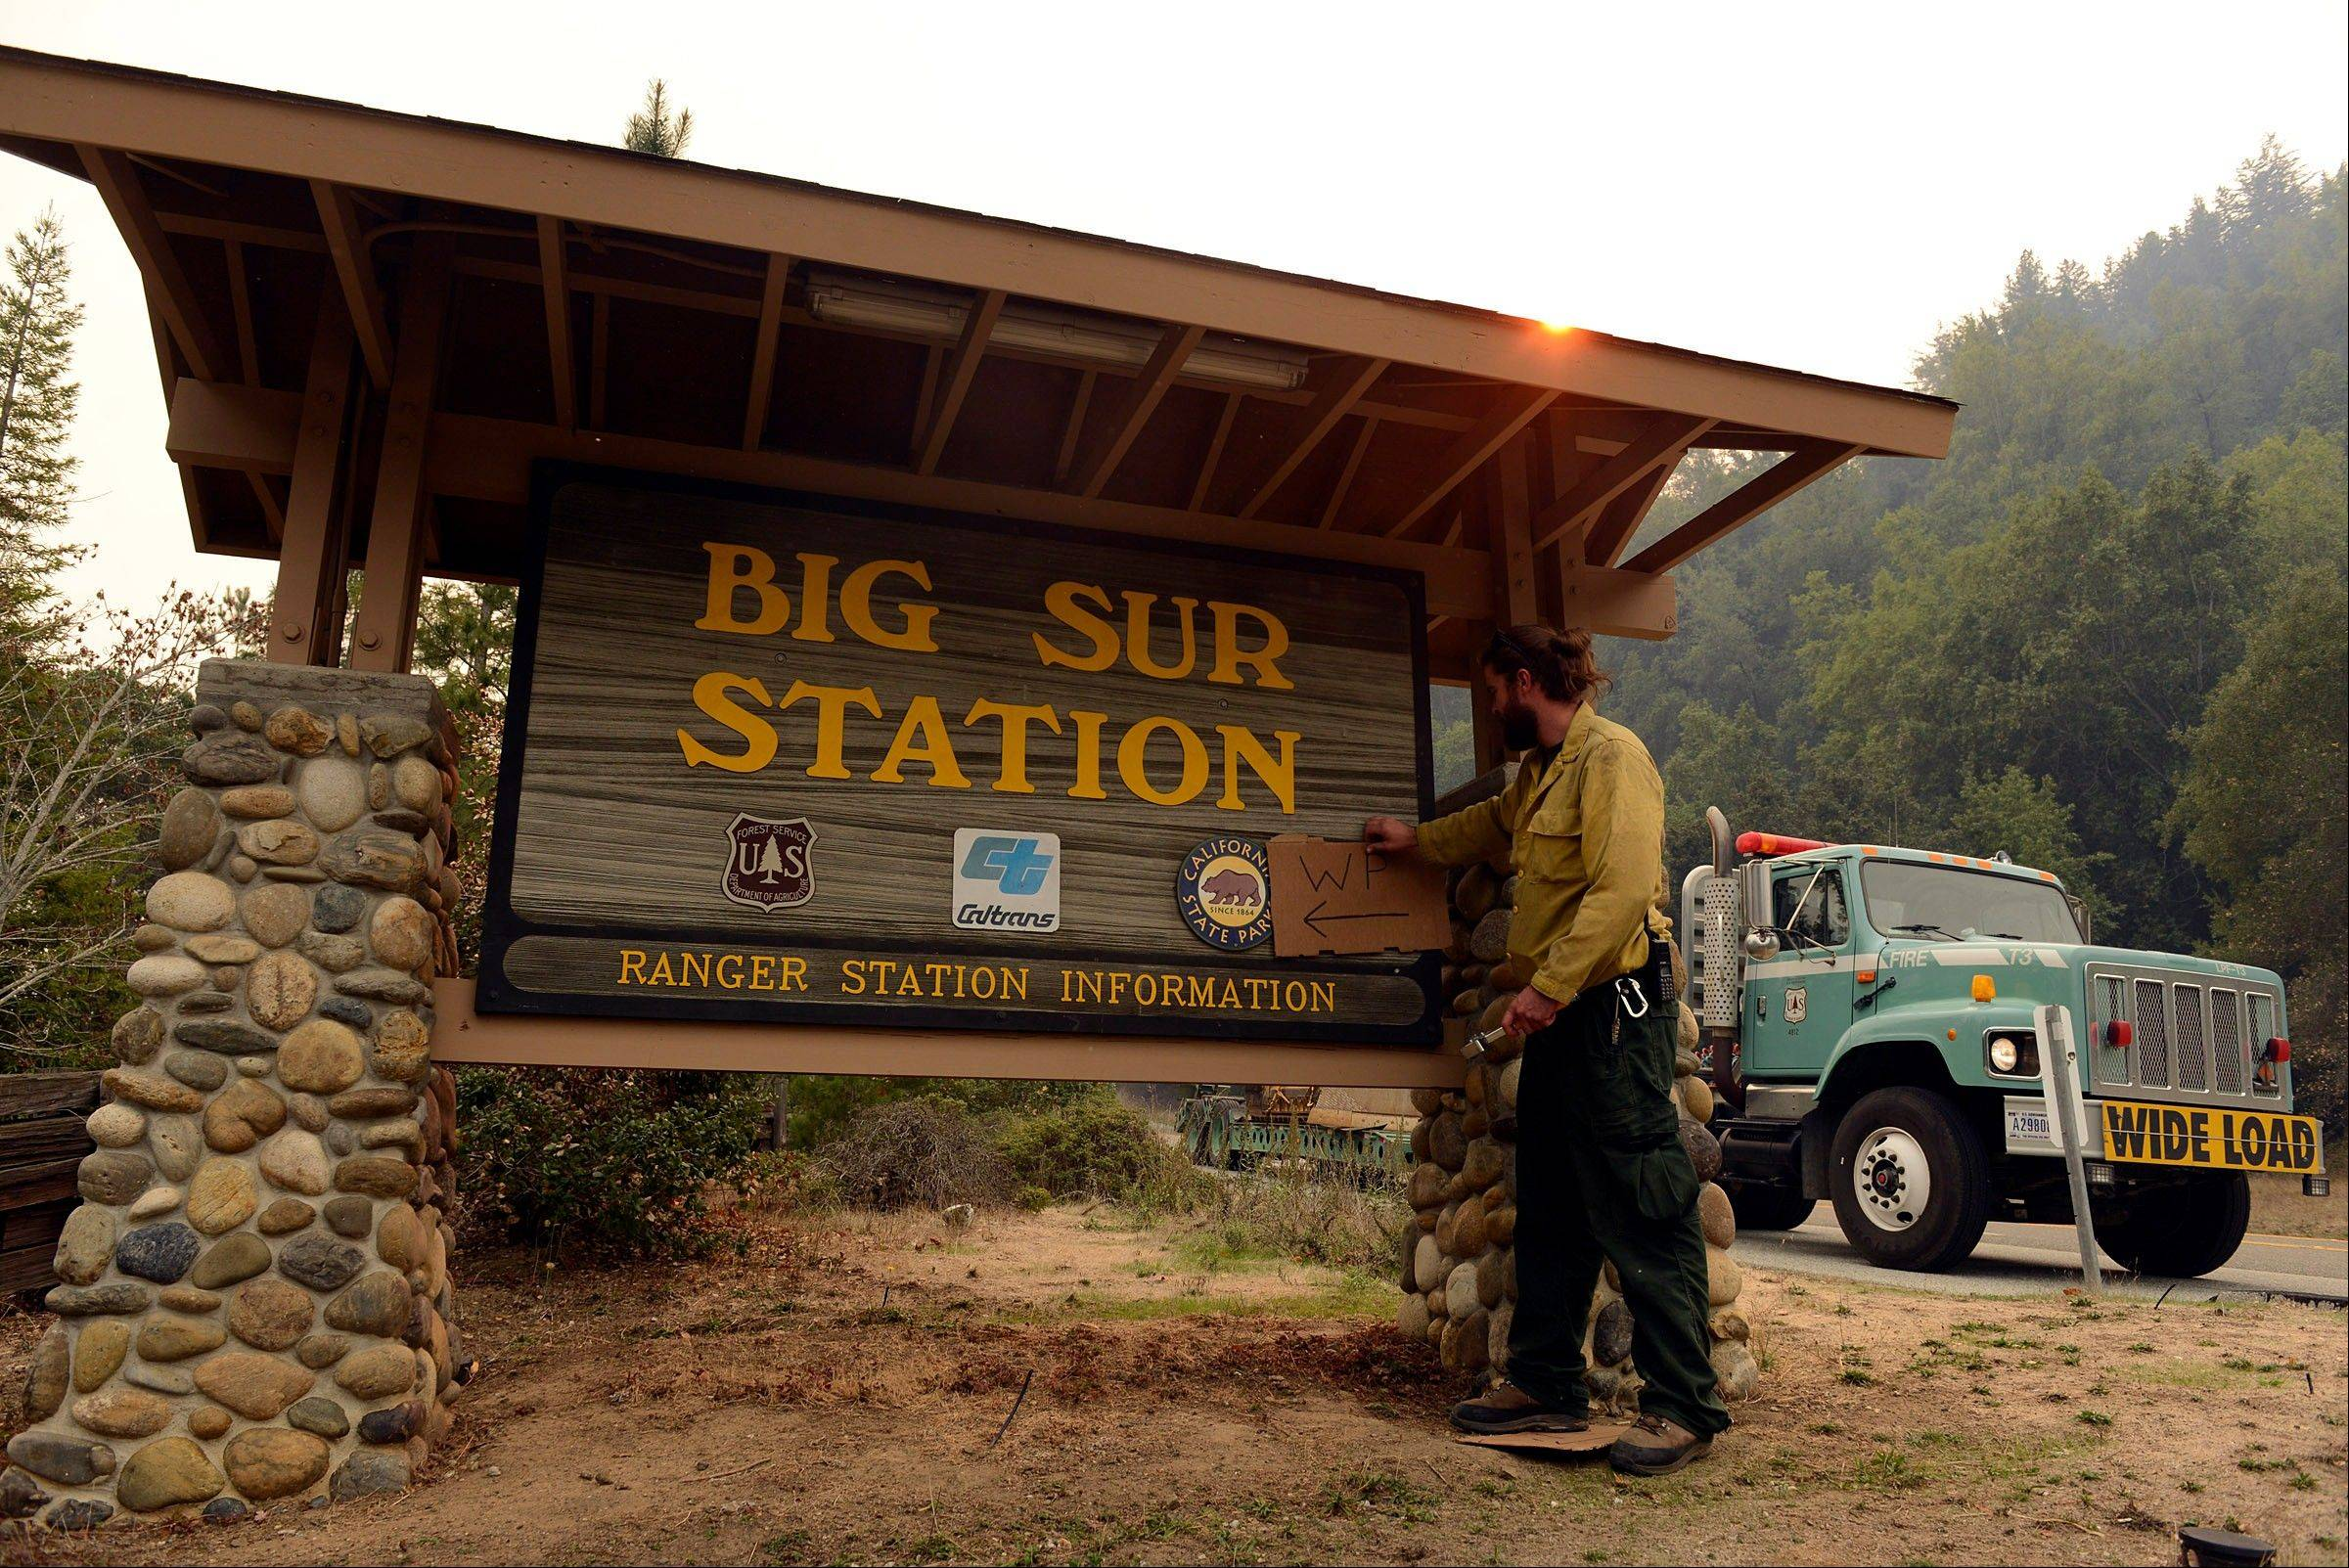 U.S. Fire Service firefighter Andrew Way puts a sign up at the Big Sur Station indicating the area as a water point for other firefighters as they battle a wildland fire in the Pfeiffer Ridge area in Big Sur, Calif. on Monday Dec. 16, 2013.